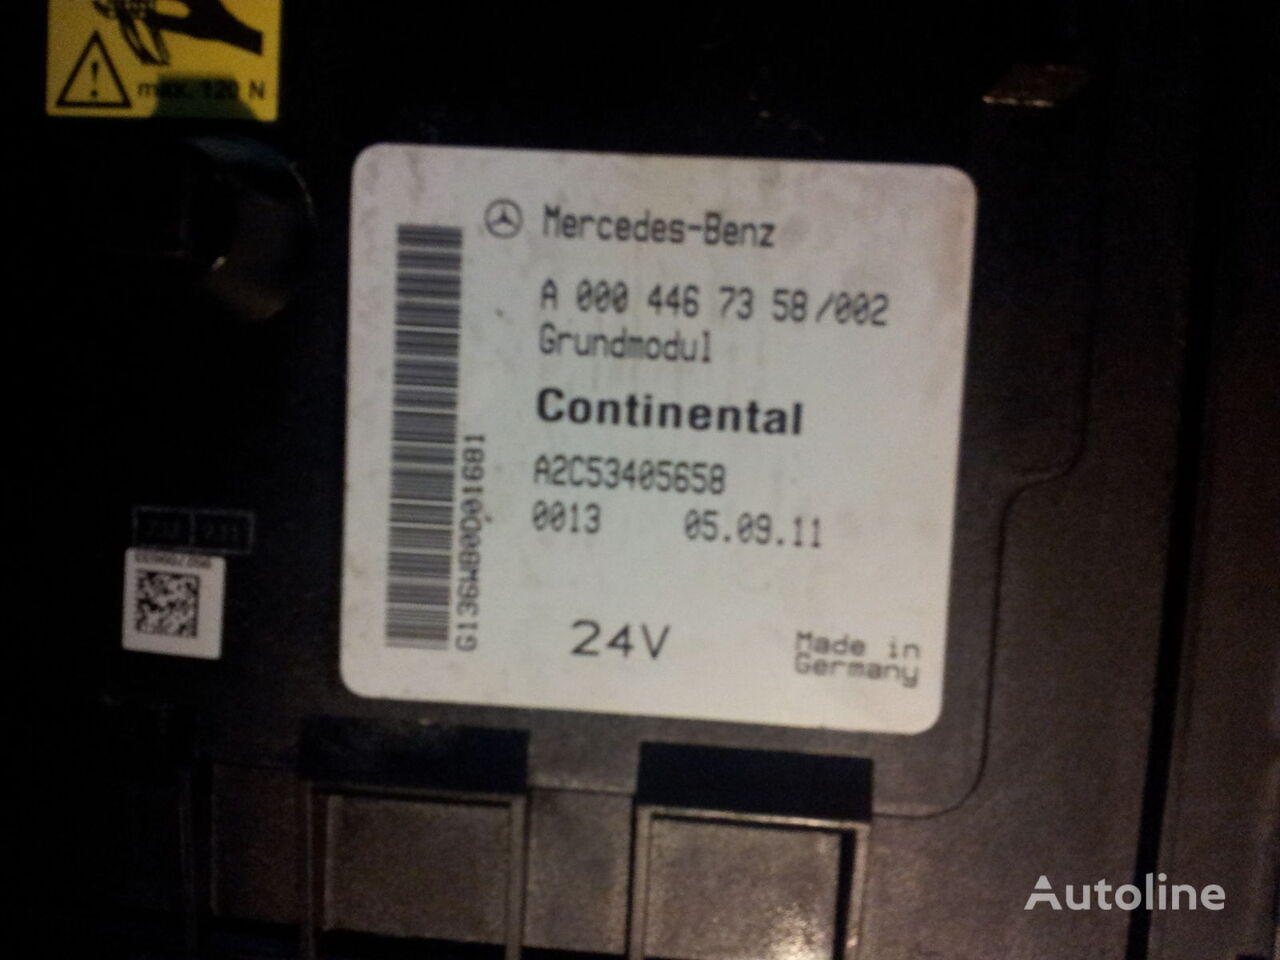 Mercedes Benz Actros Mp2 Mp3 Gm Unit Grundmodul Fuse Box Central 220 Photo Electric Block For Tractor